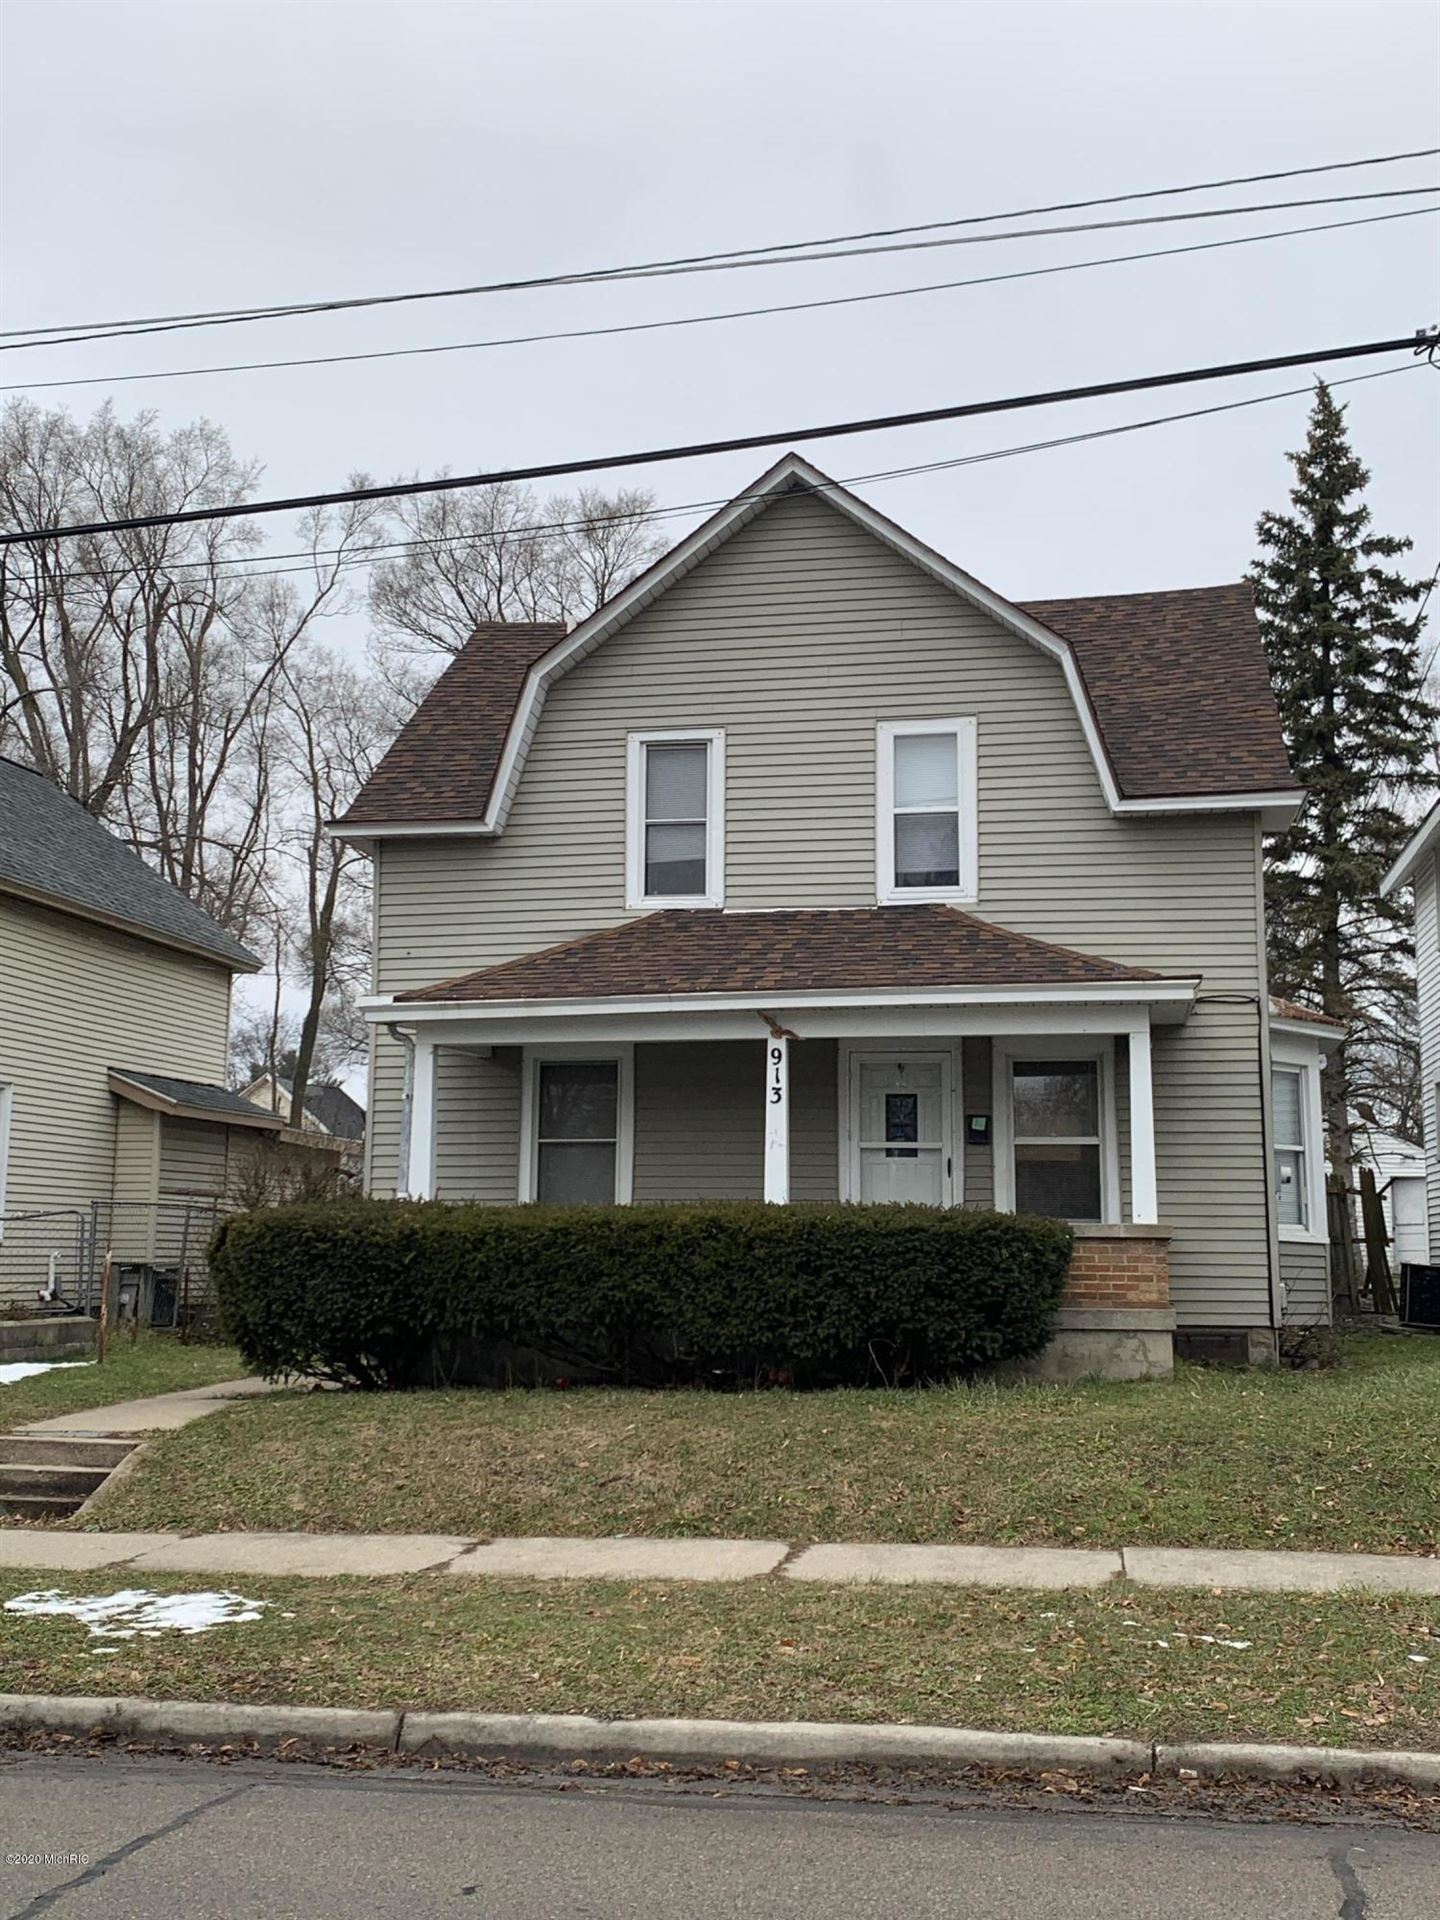 913 Adams Street SE, Grand Rapids, MI 49507 - MLS#: 20048676